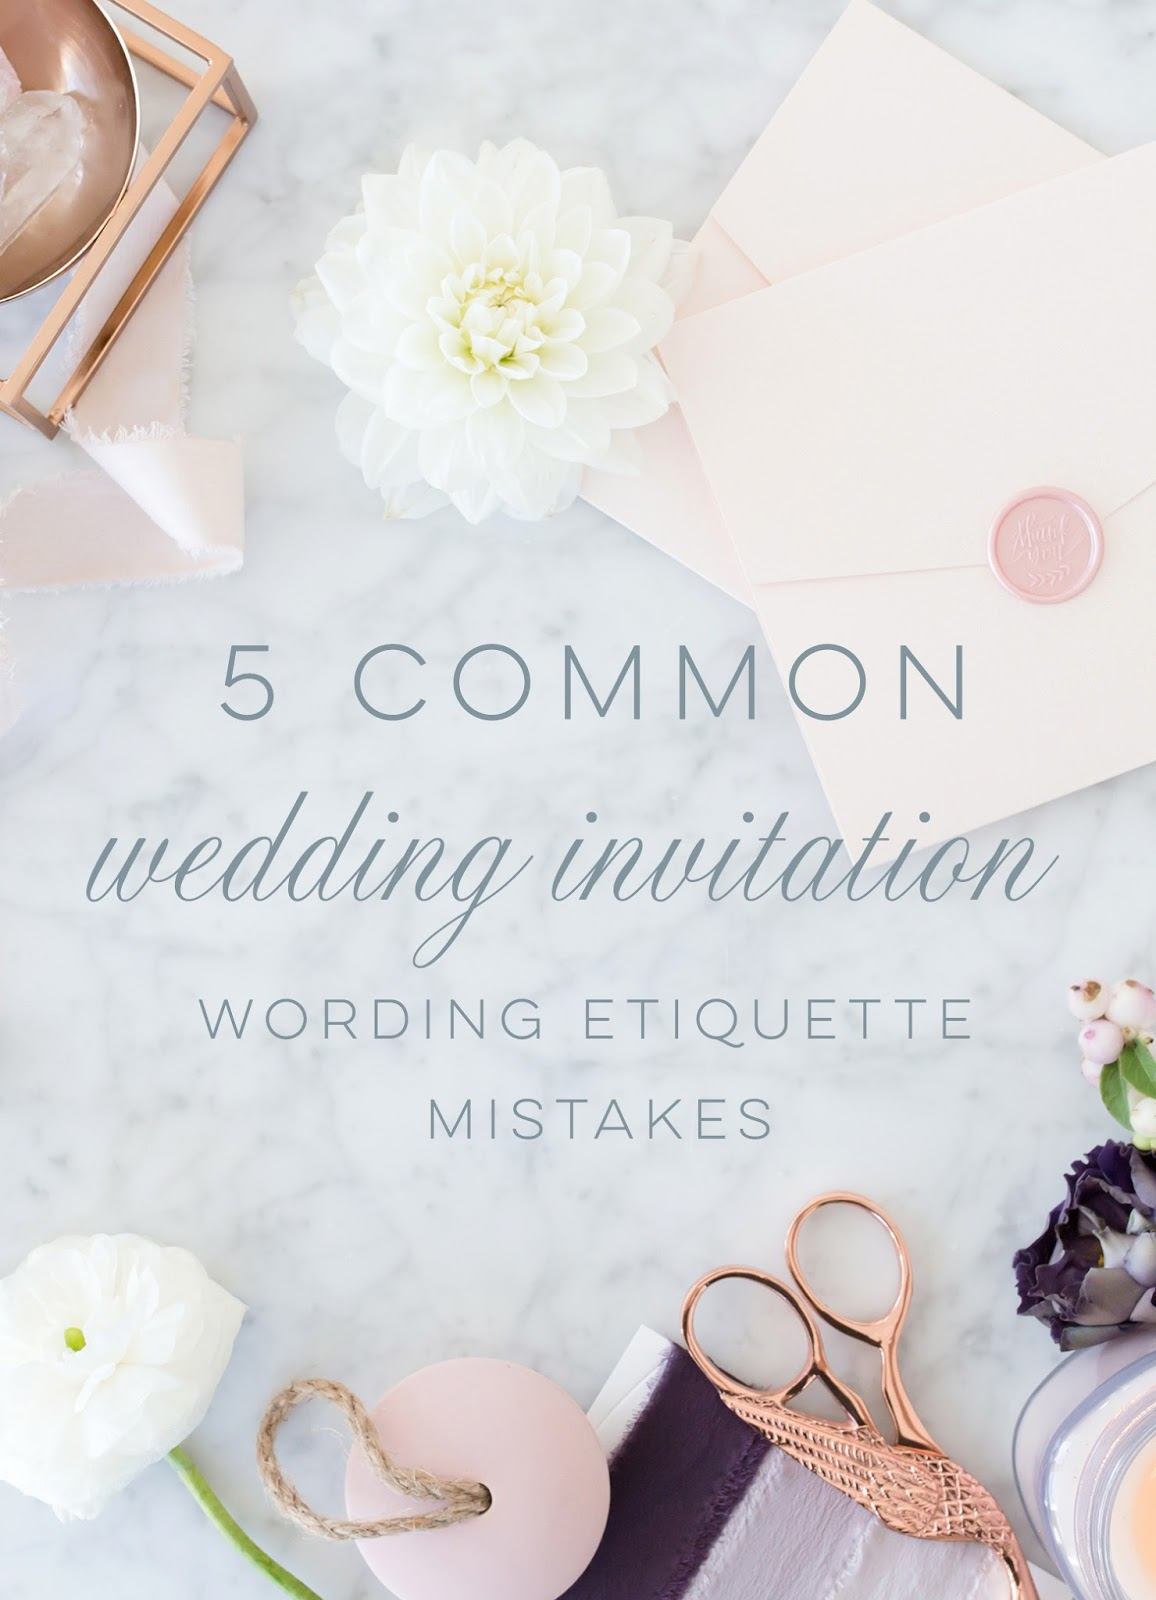 Wedding Invitation Wording Etiquette 5 Common Mistakes Blush Paperie